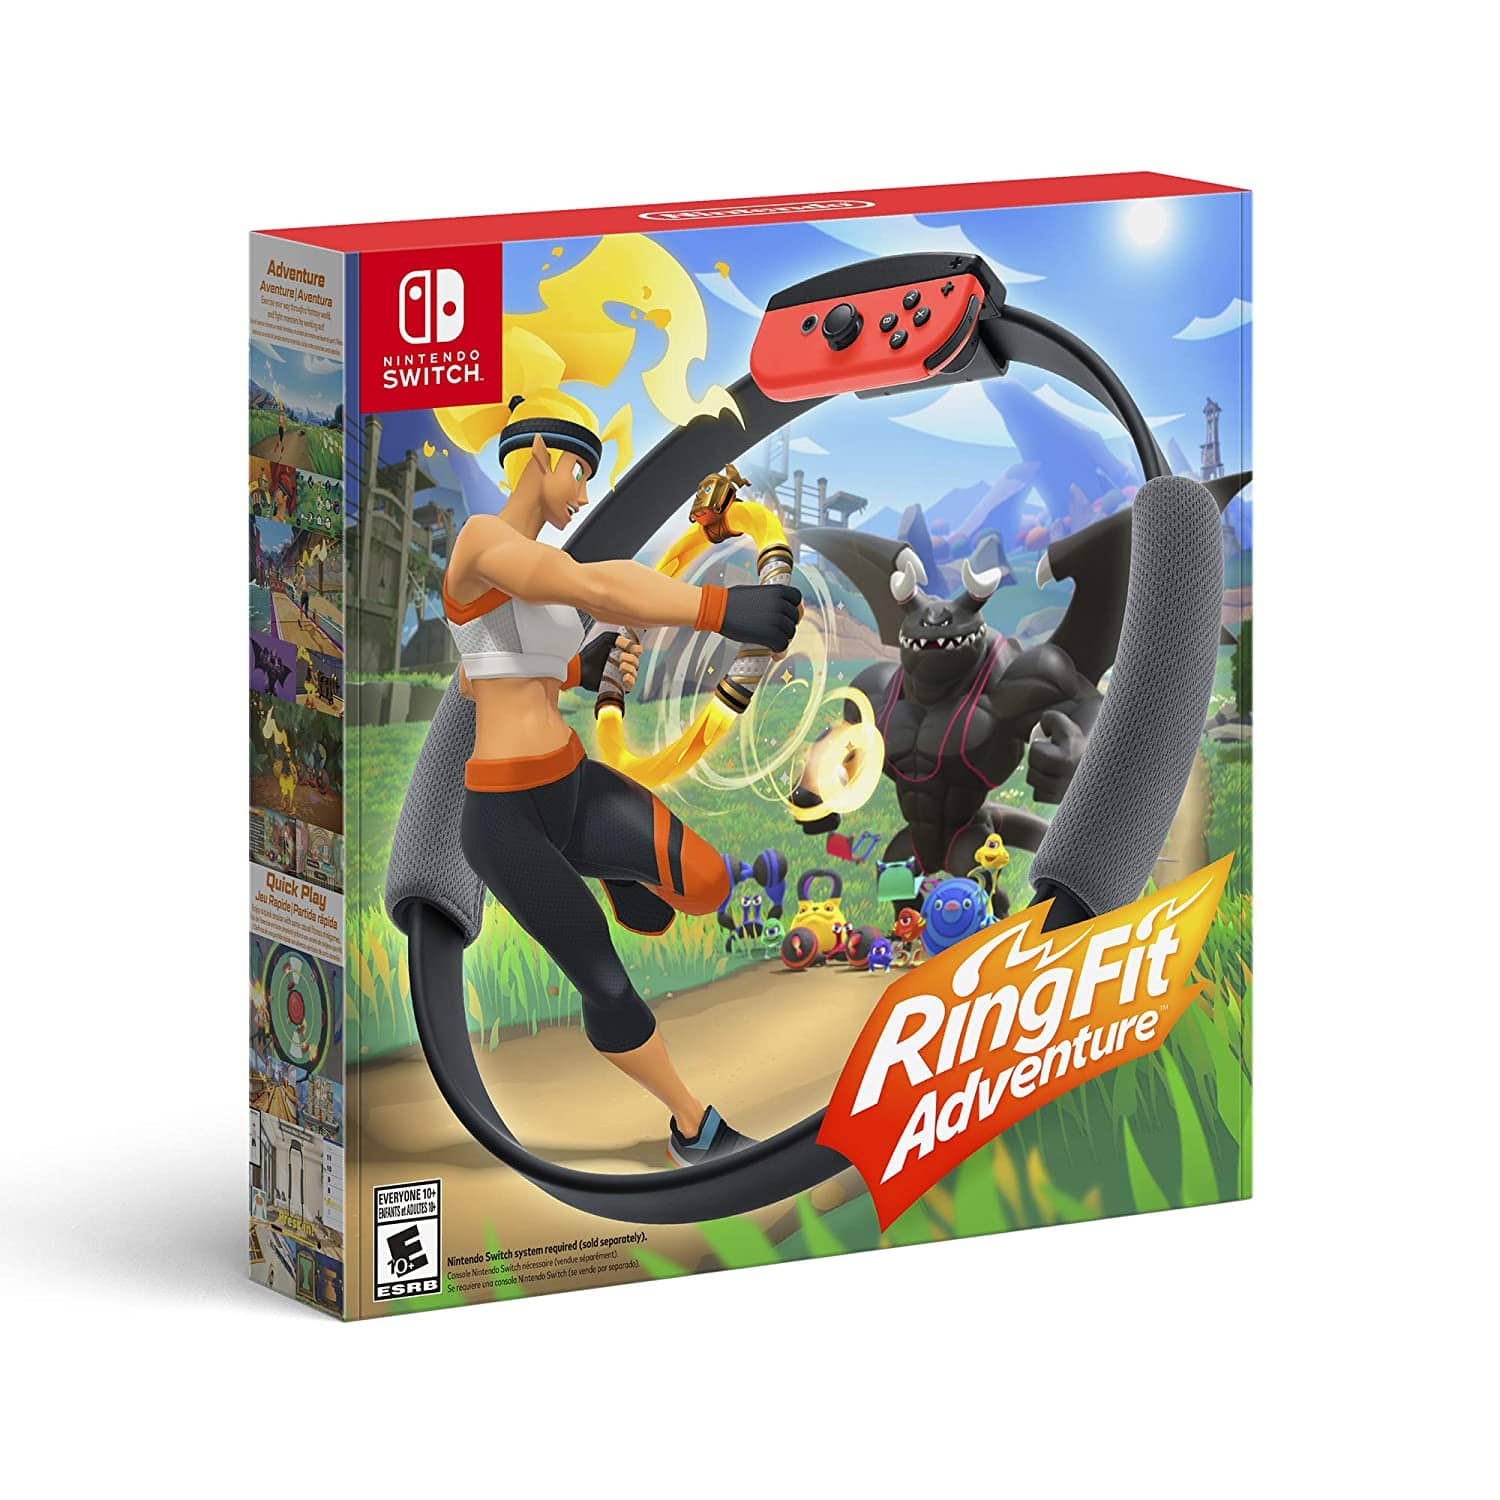 Ring Fit Adventure - Nintendo Switch - Pre Order - Due in stock July 28 - $79.99 - Expired